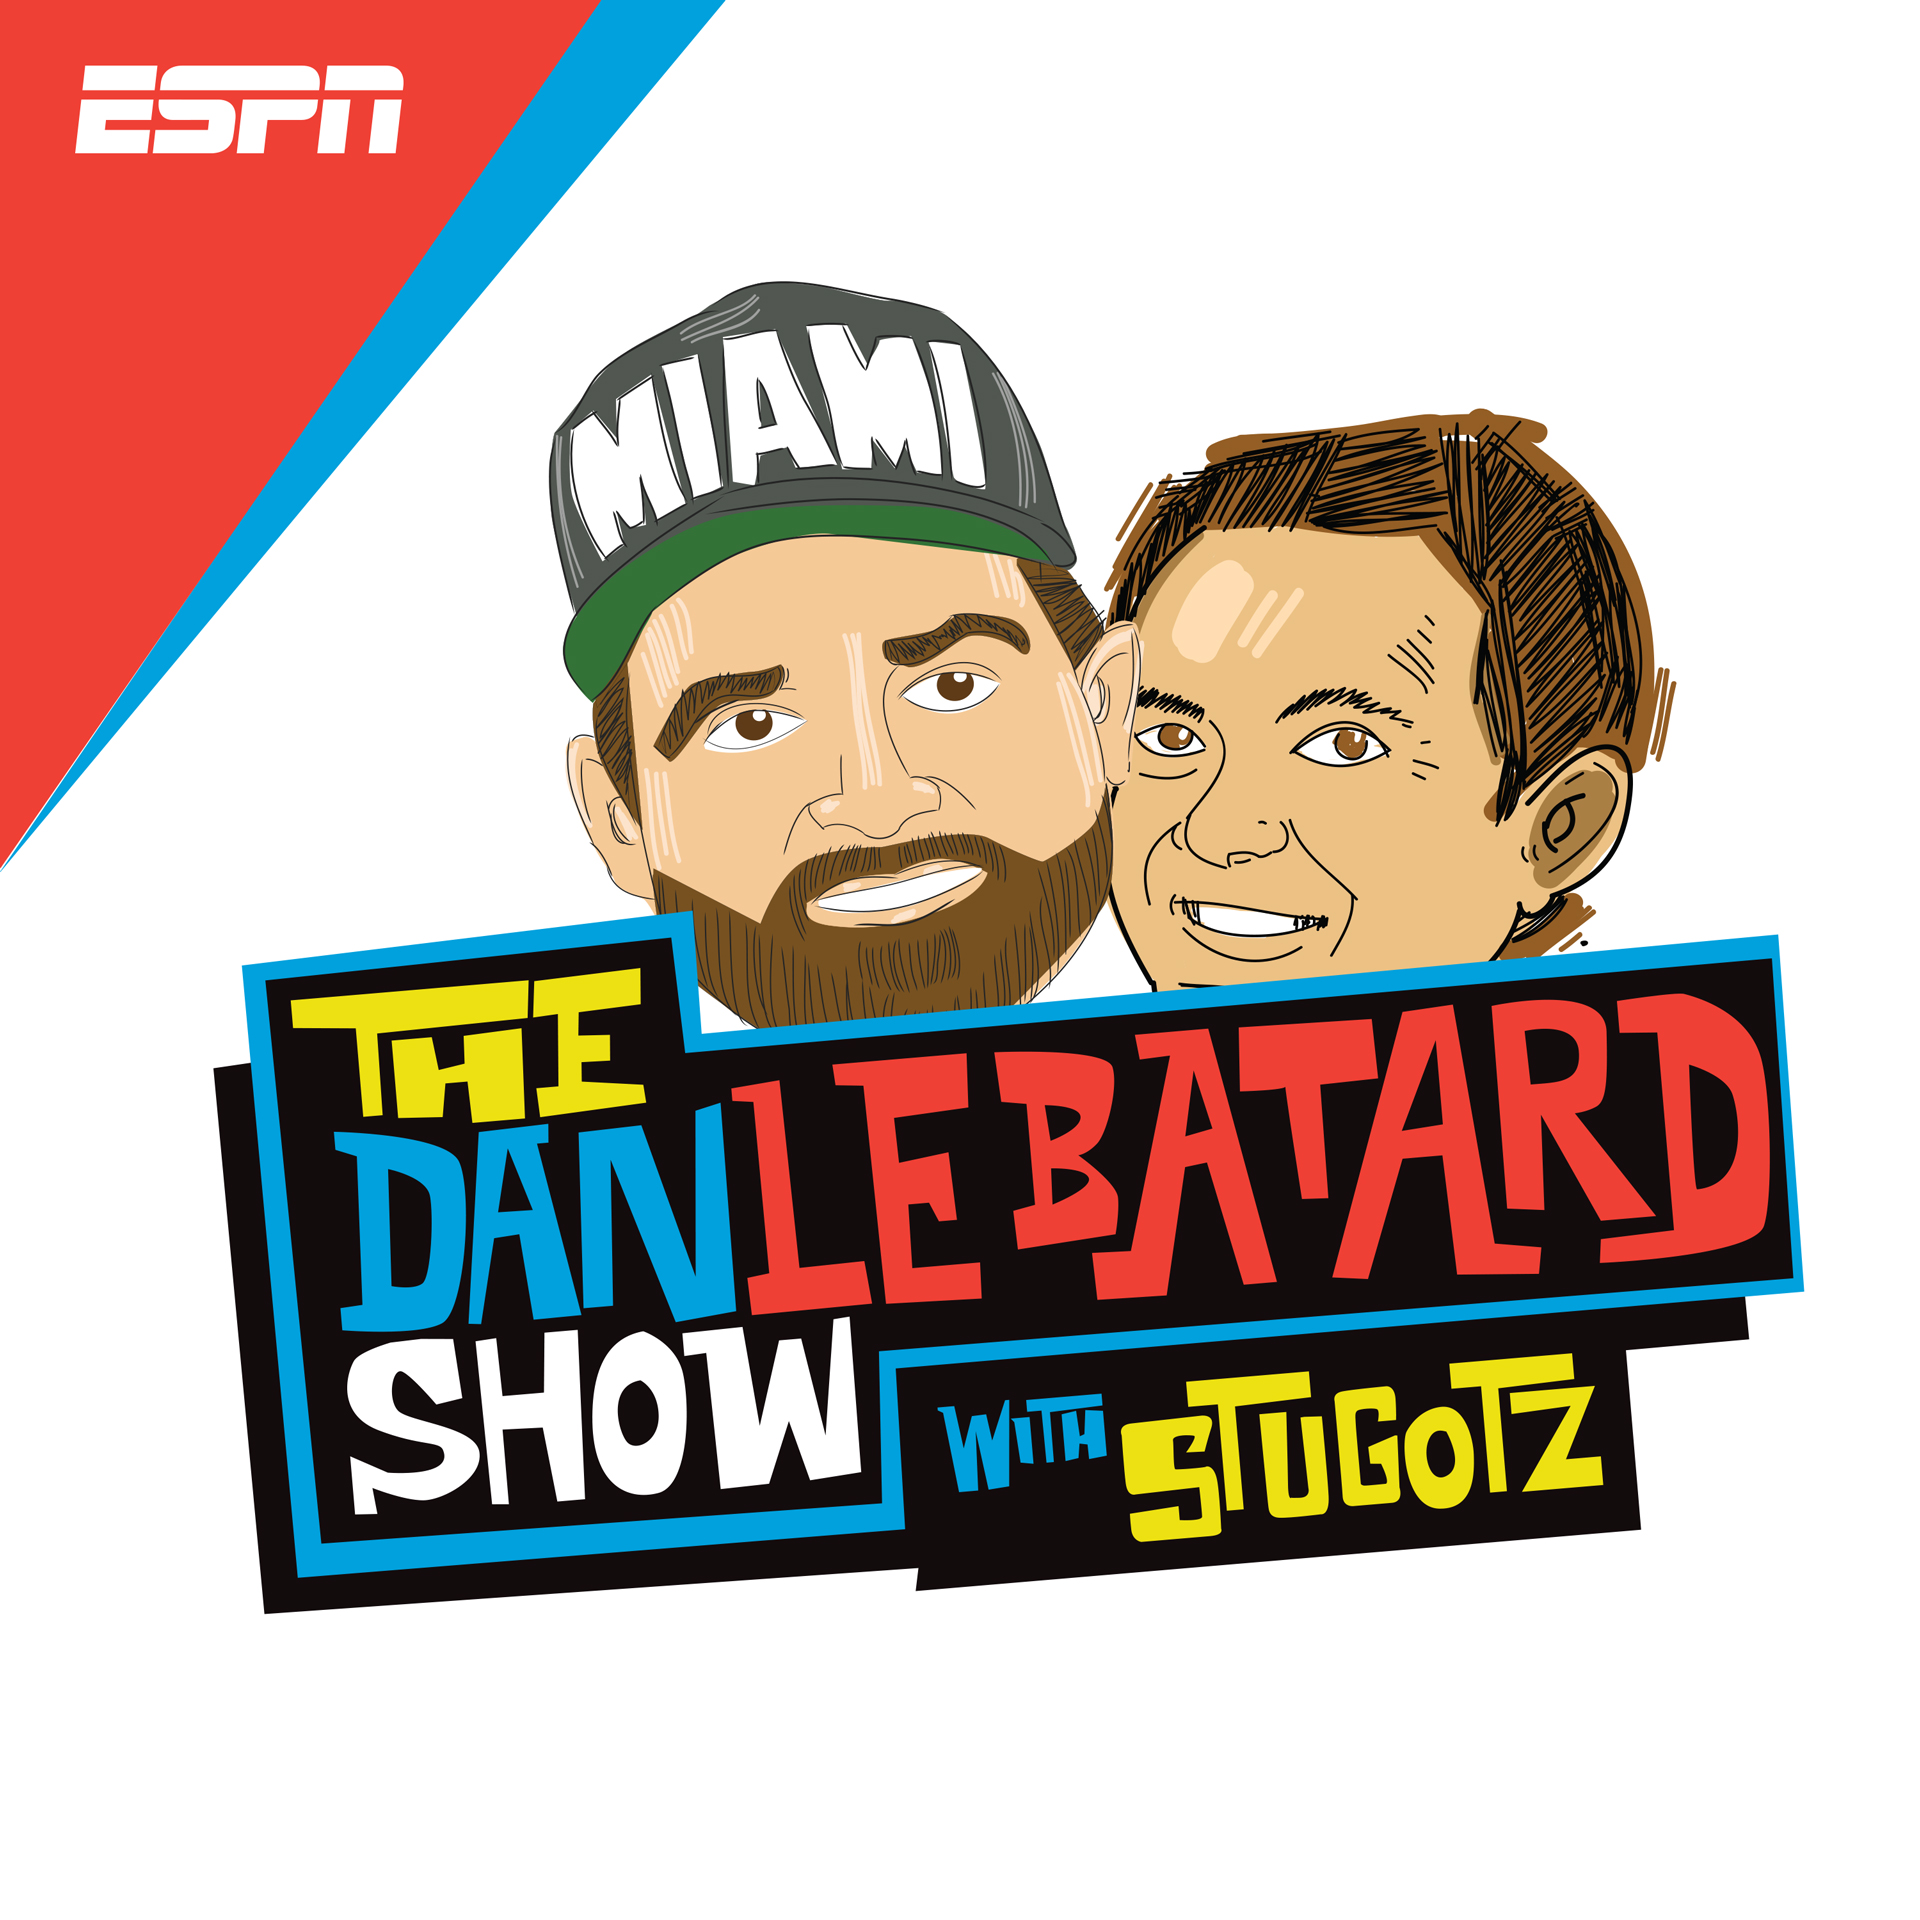 The-Dan-La-Batard-Show_1920x1920